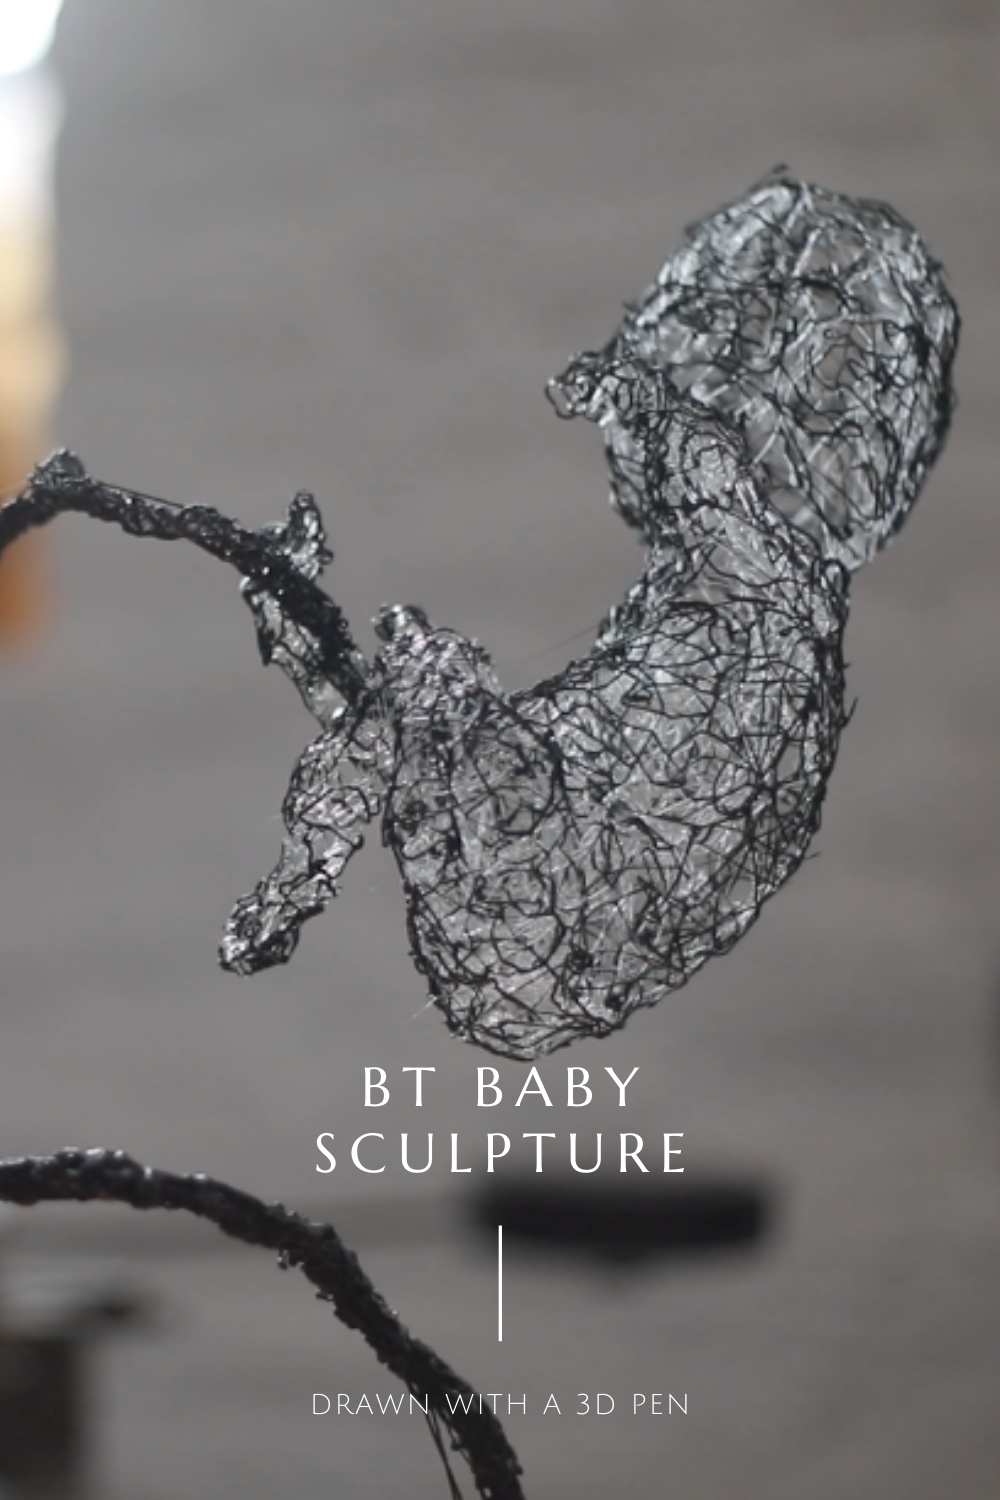 Sculpture of a BT baby from death stranding sketched with a 3Doodler 3d pen.